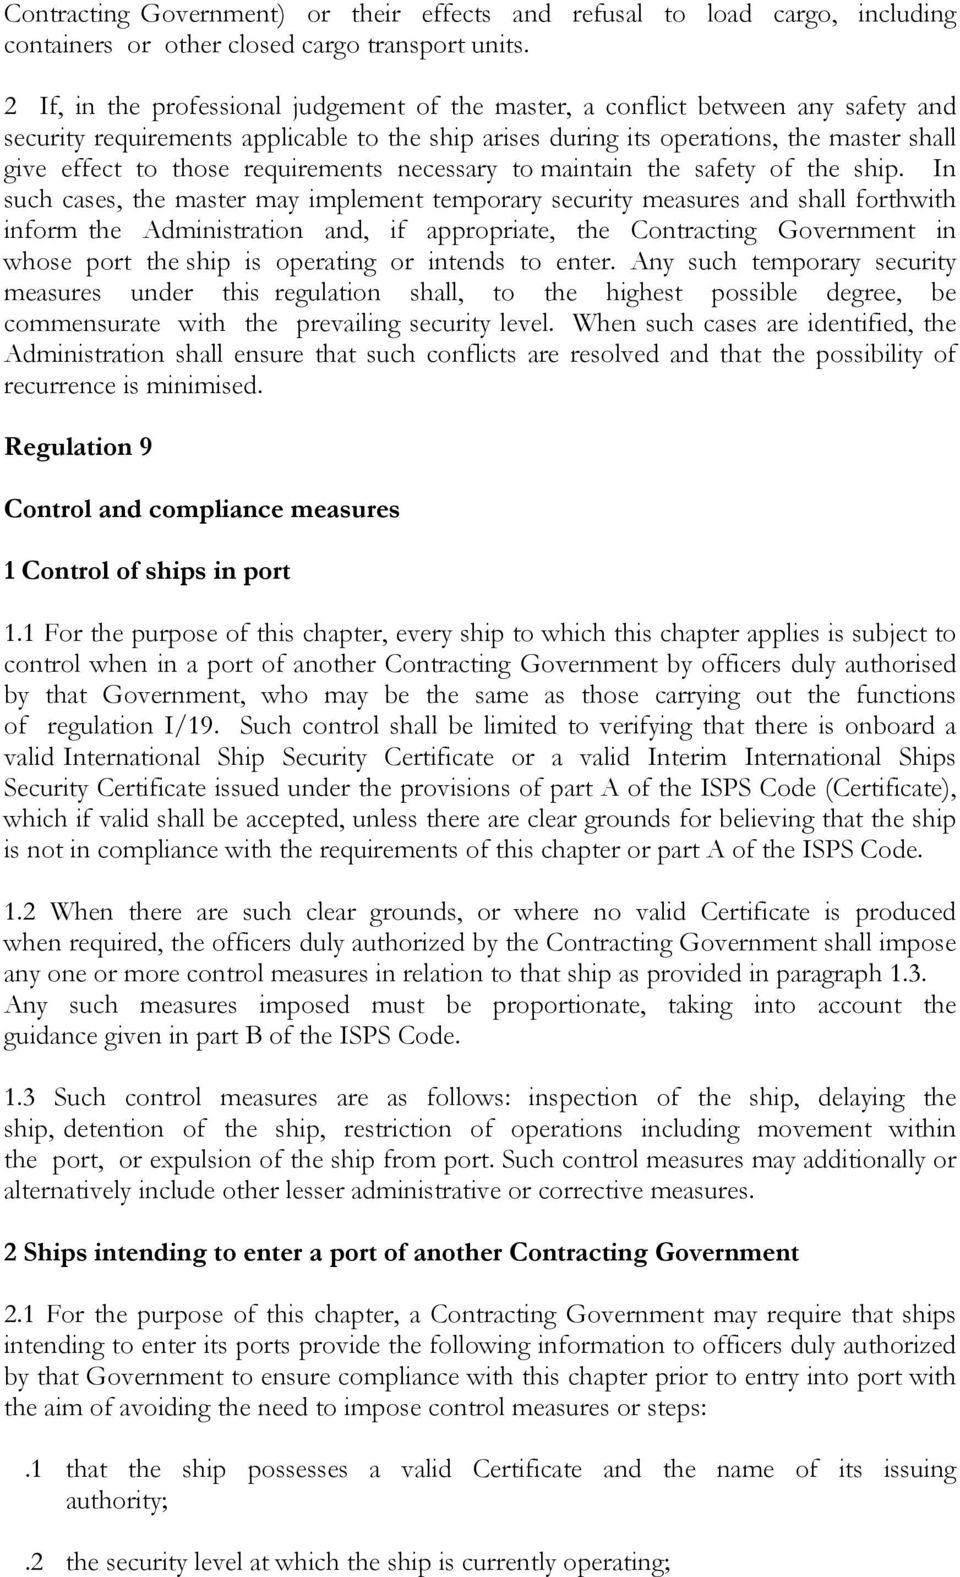 requirements necessary to maintain the safety of the ship.